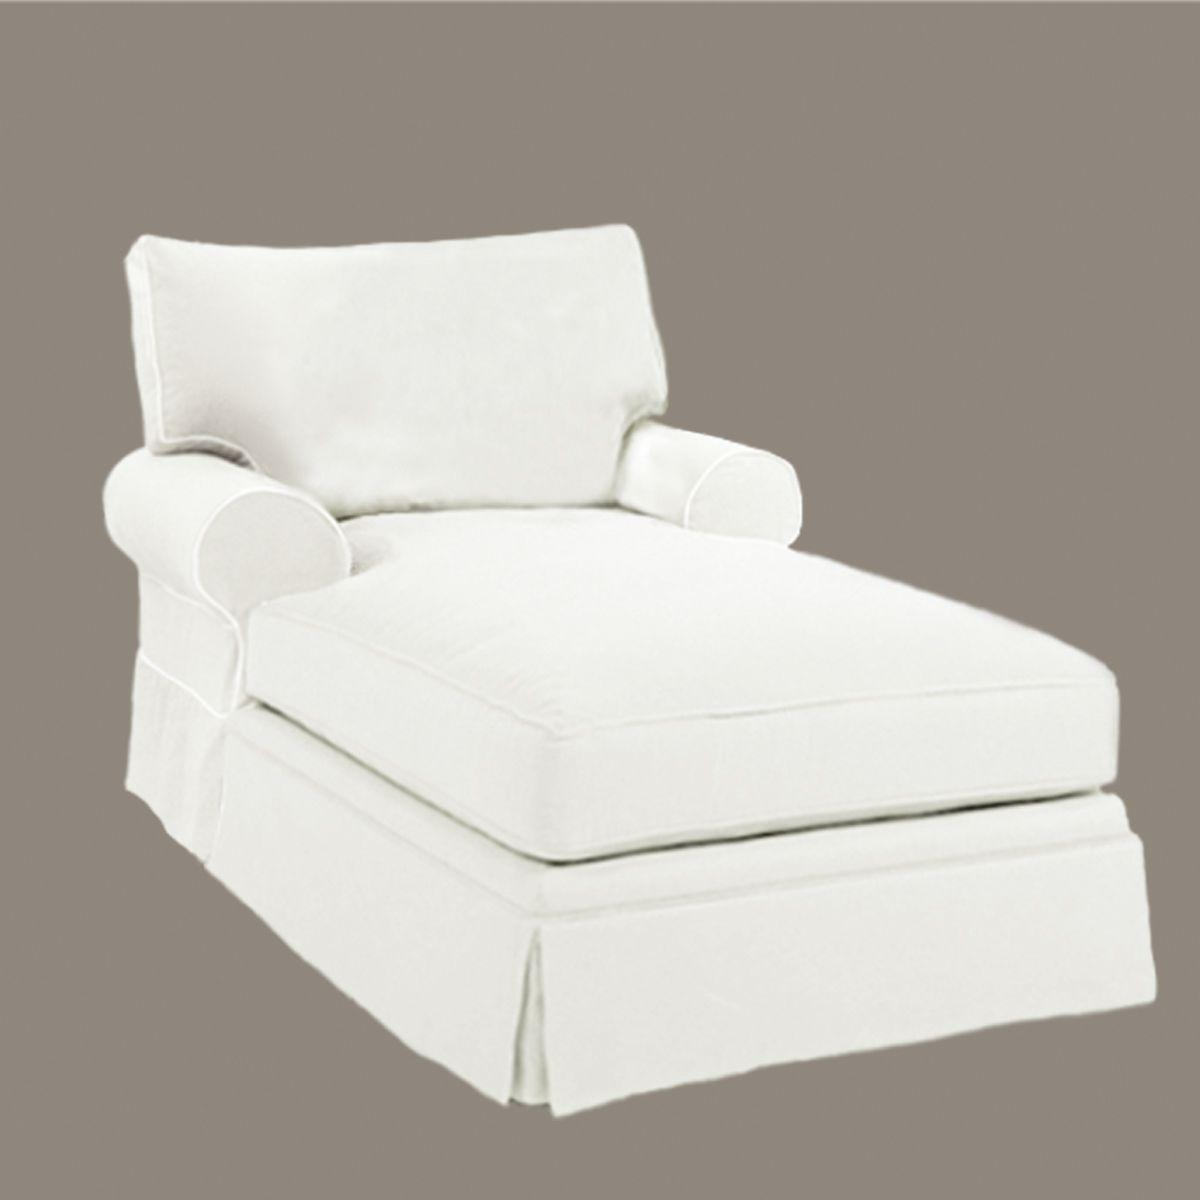 20 Collection Of Slipcovered Chaises Sofa Ideas